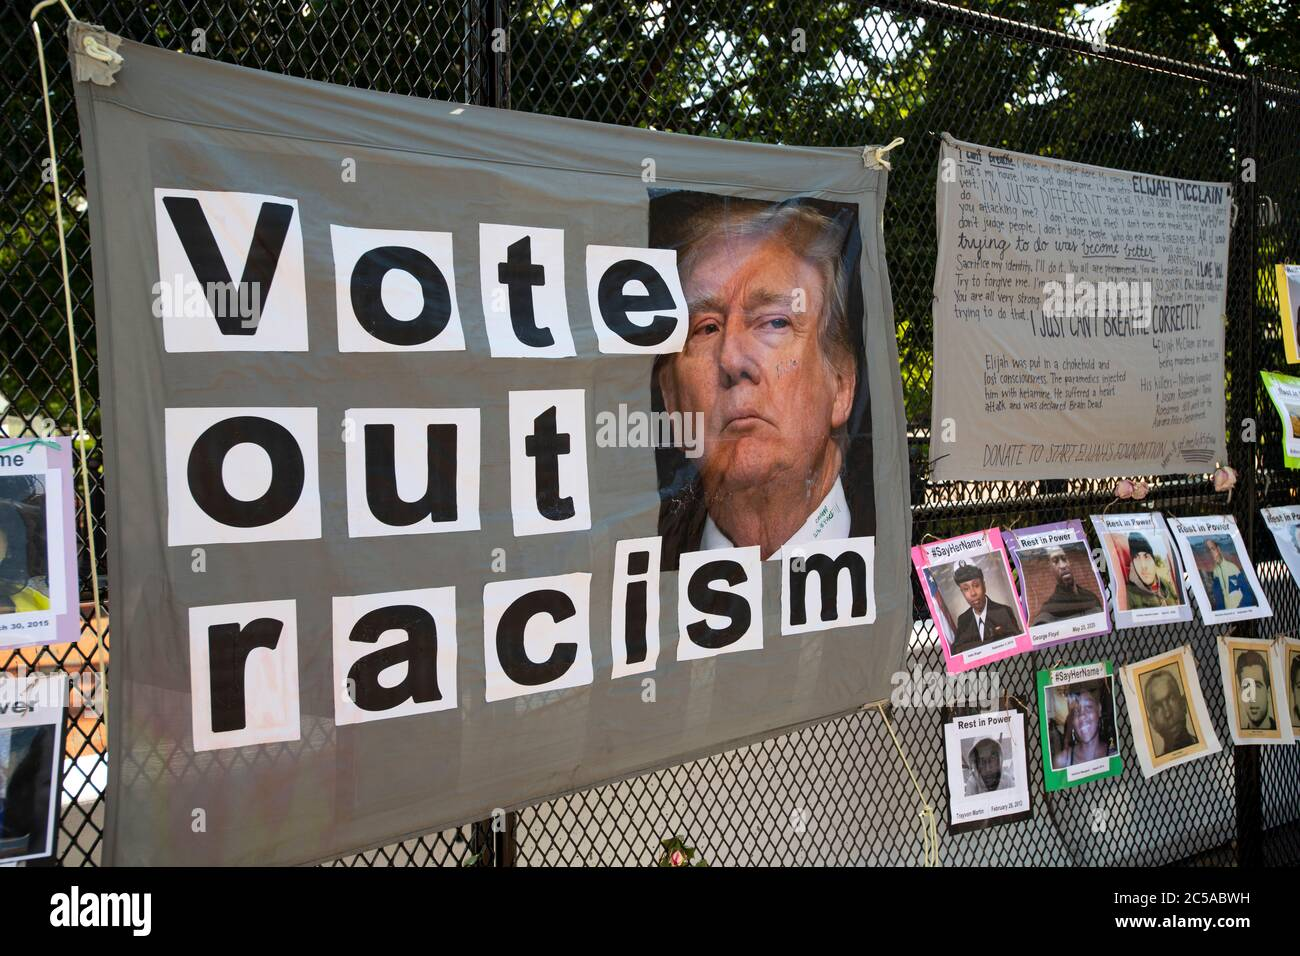 usa-washington-dc-protest-signs-against-racism-attached-to-a-temporary-fence-around-lafayette-square-2C5ABWH.jpg